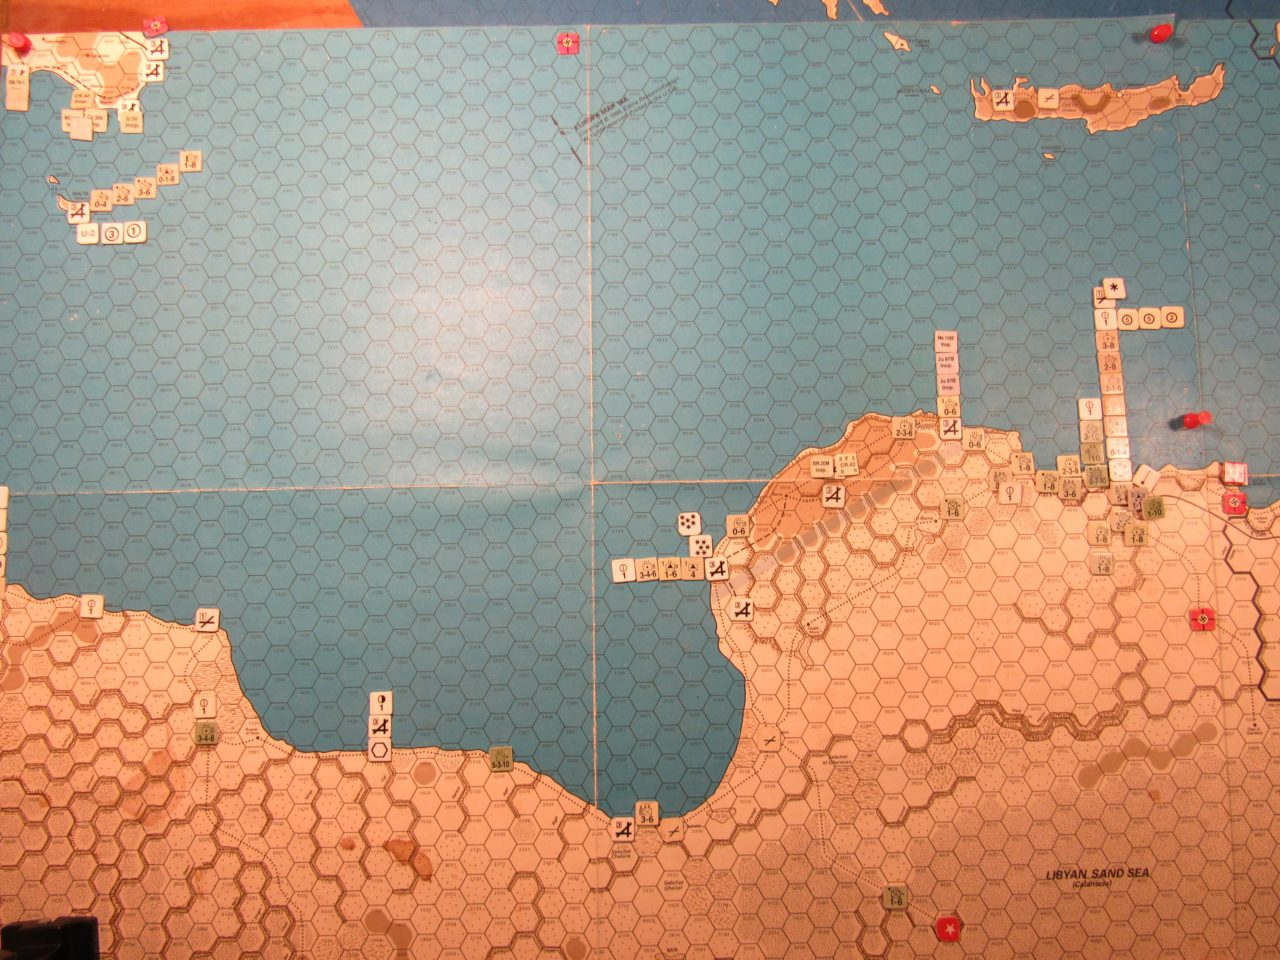 WW ME/ER-II/Crete Scenrio Apr II 41 Axis EOT dispositions: Libya and Sicily